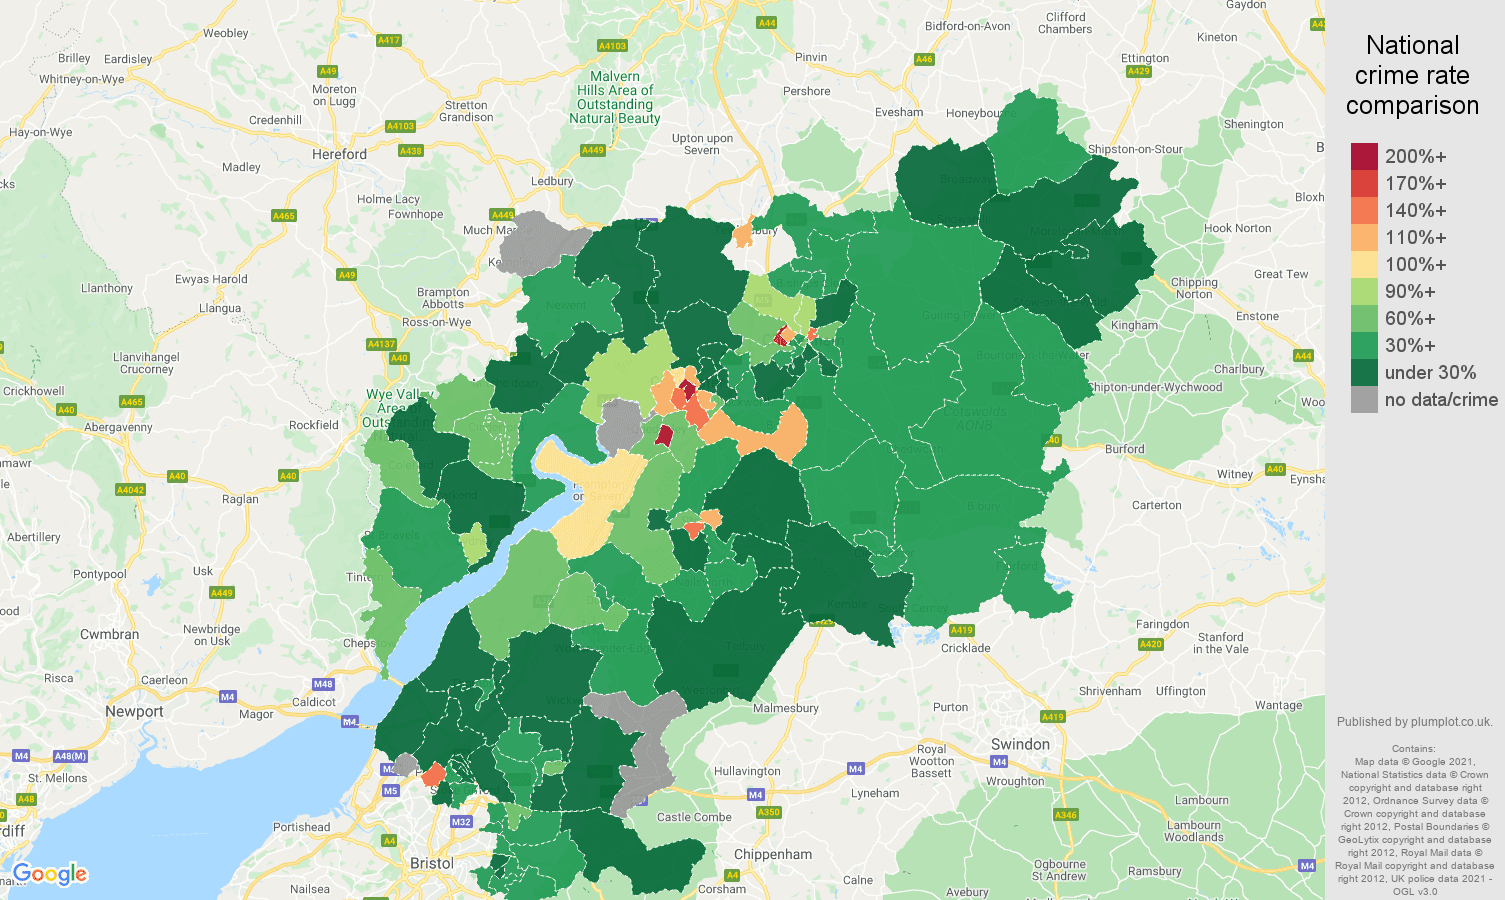 Gloucestershire drugs crime rate comparison map